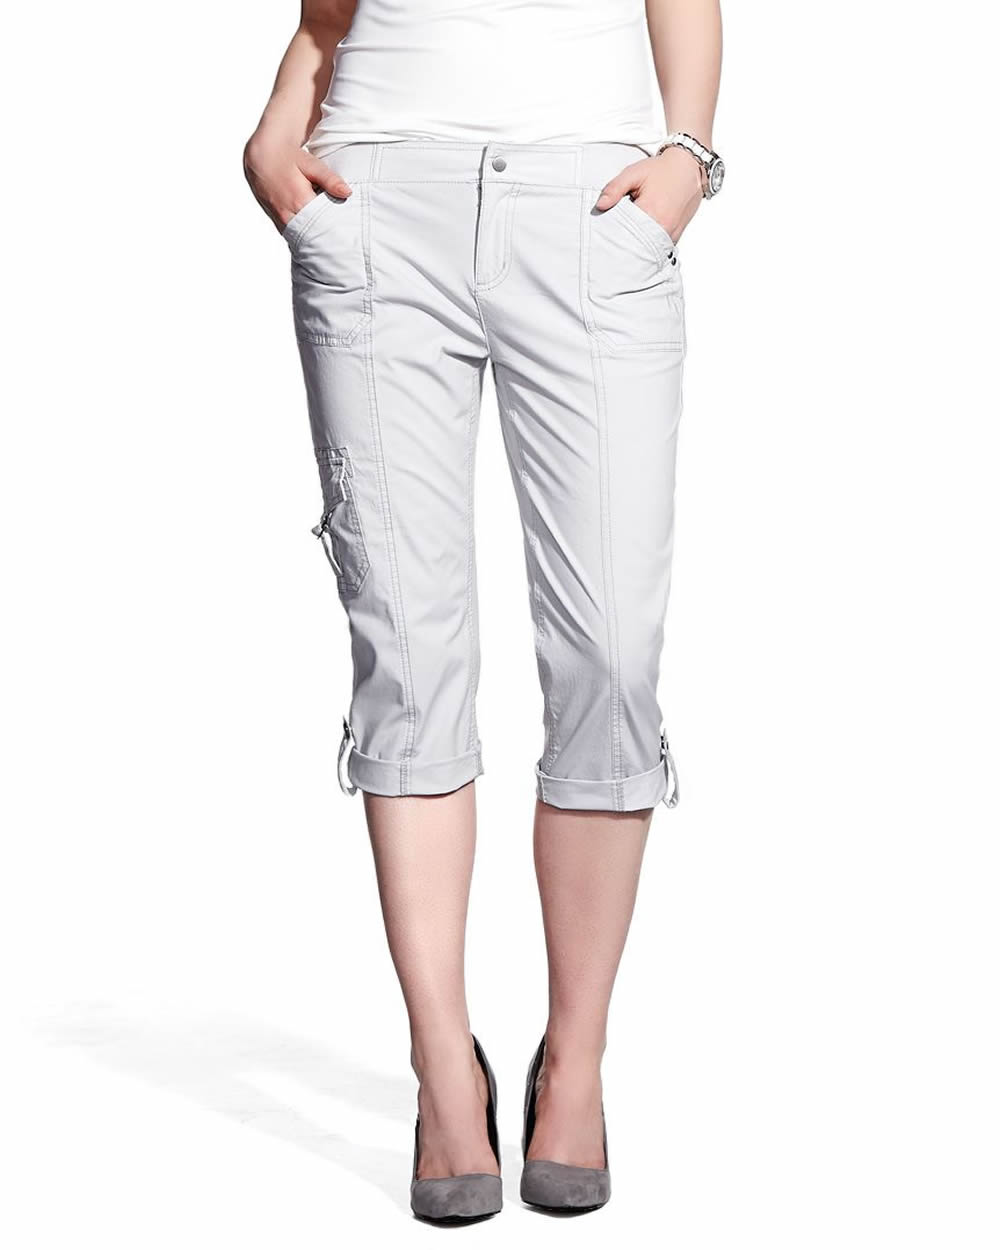 Shop brilliantly cut, modern capri pants from Lee. Explore stylish women's denim capris and knit capris, cut at a perfect length for a perfect movability.